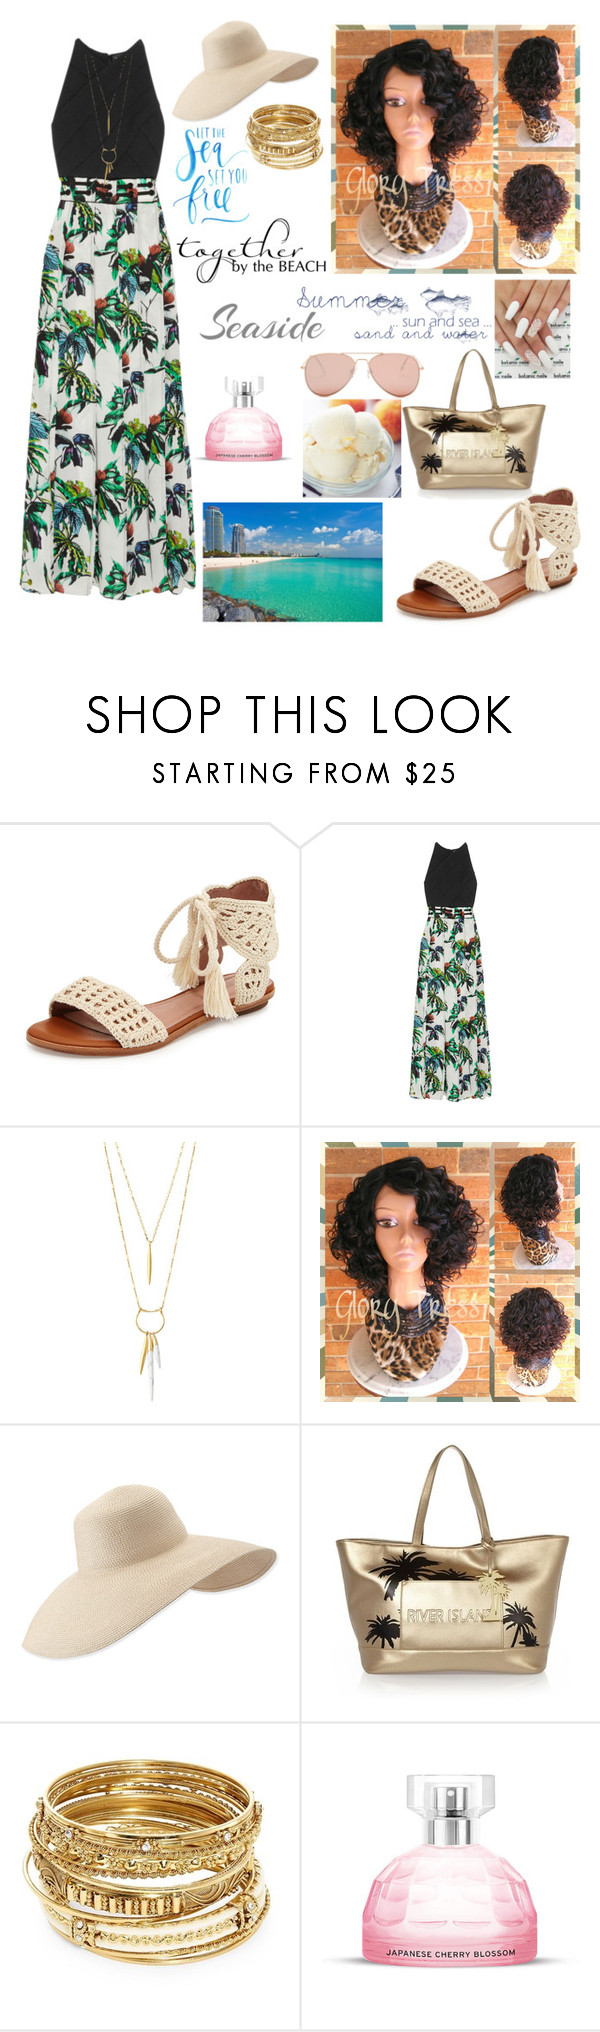 """Untitled #1126"" by feb16 ❤ liked on Polyvore featuring Joie, Proenza Schouler, Stella & Dot, Eric Javits, River Island, ABS by Allen Schwartz and Betsey Johnson"